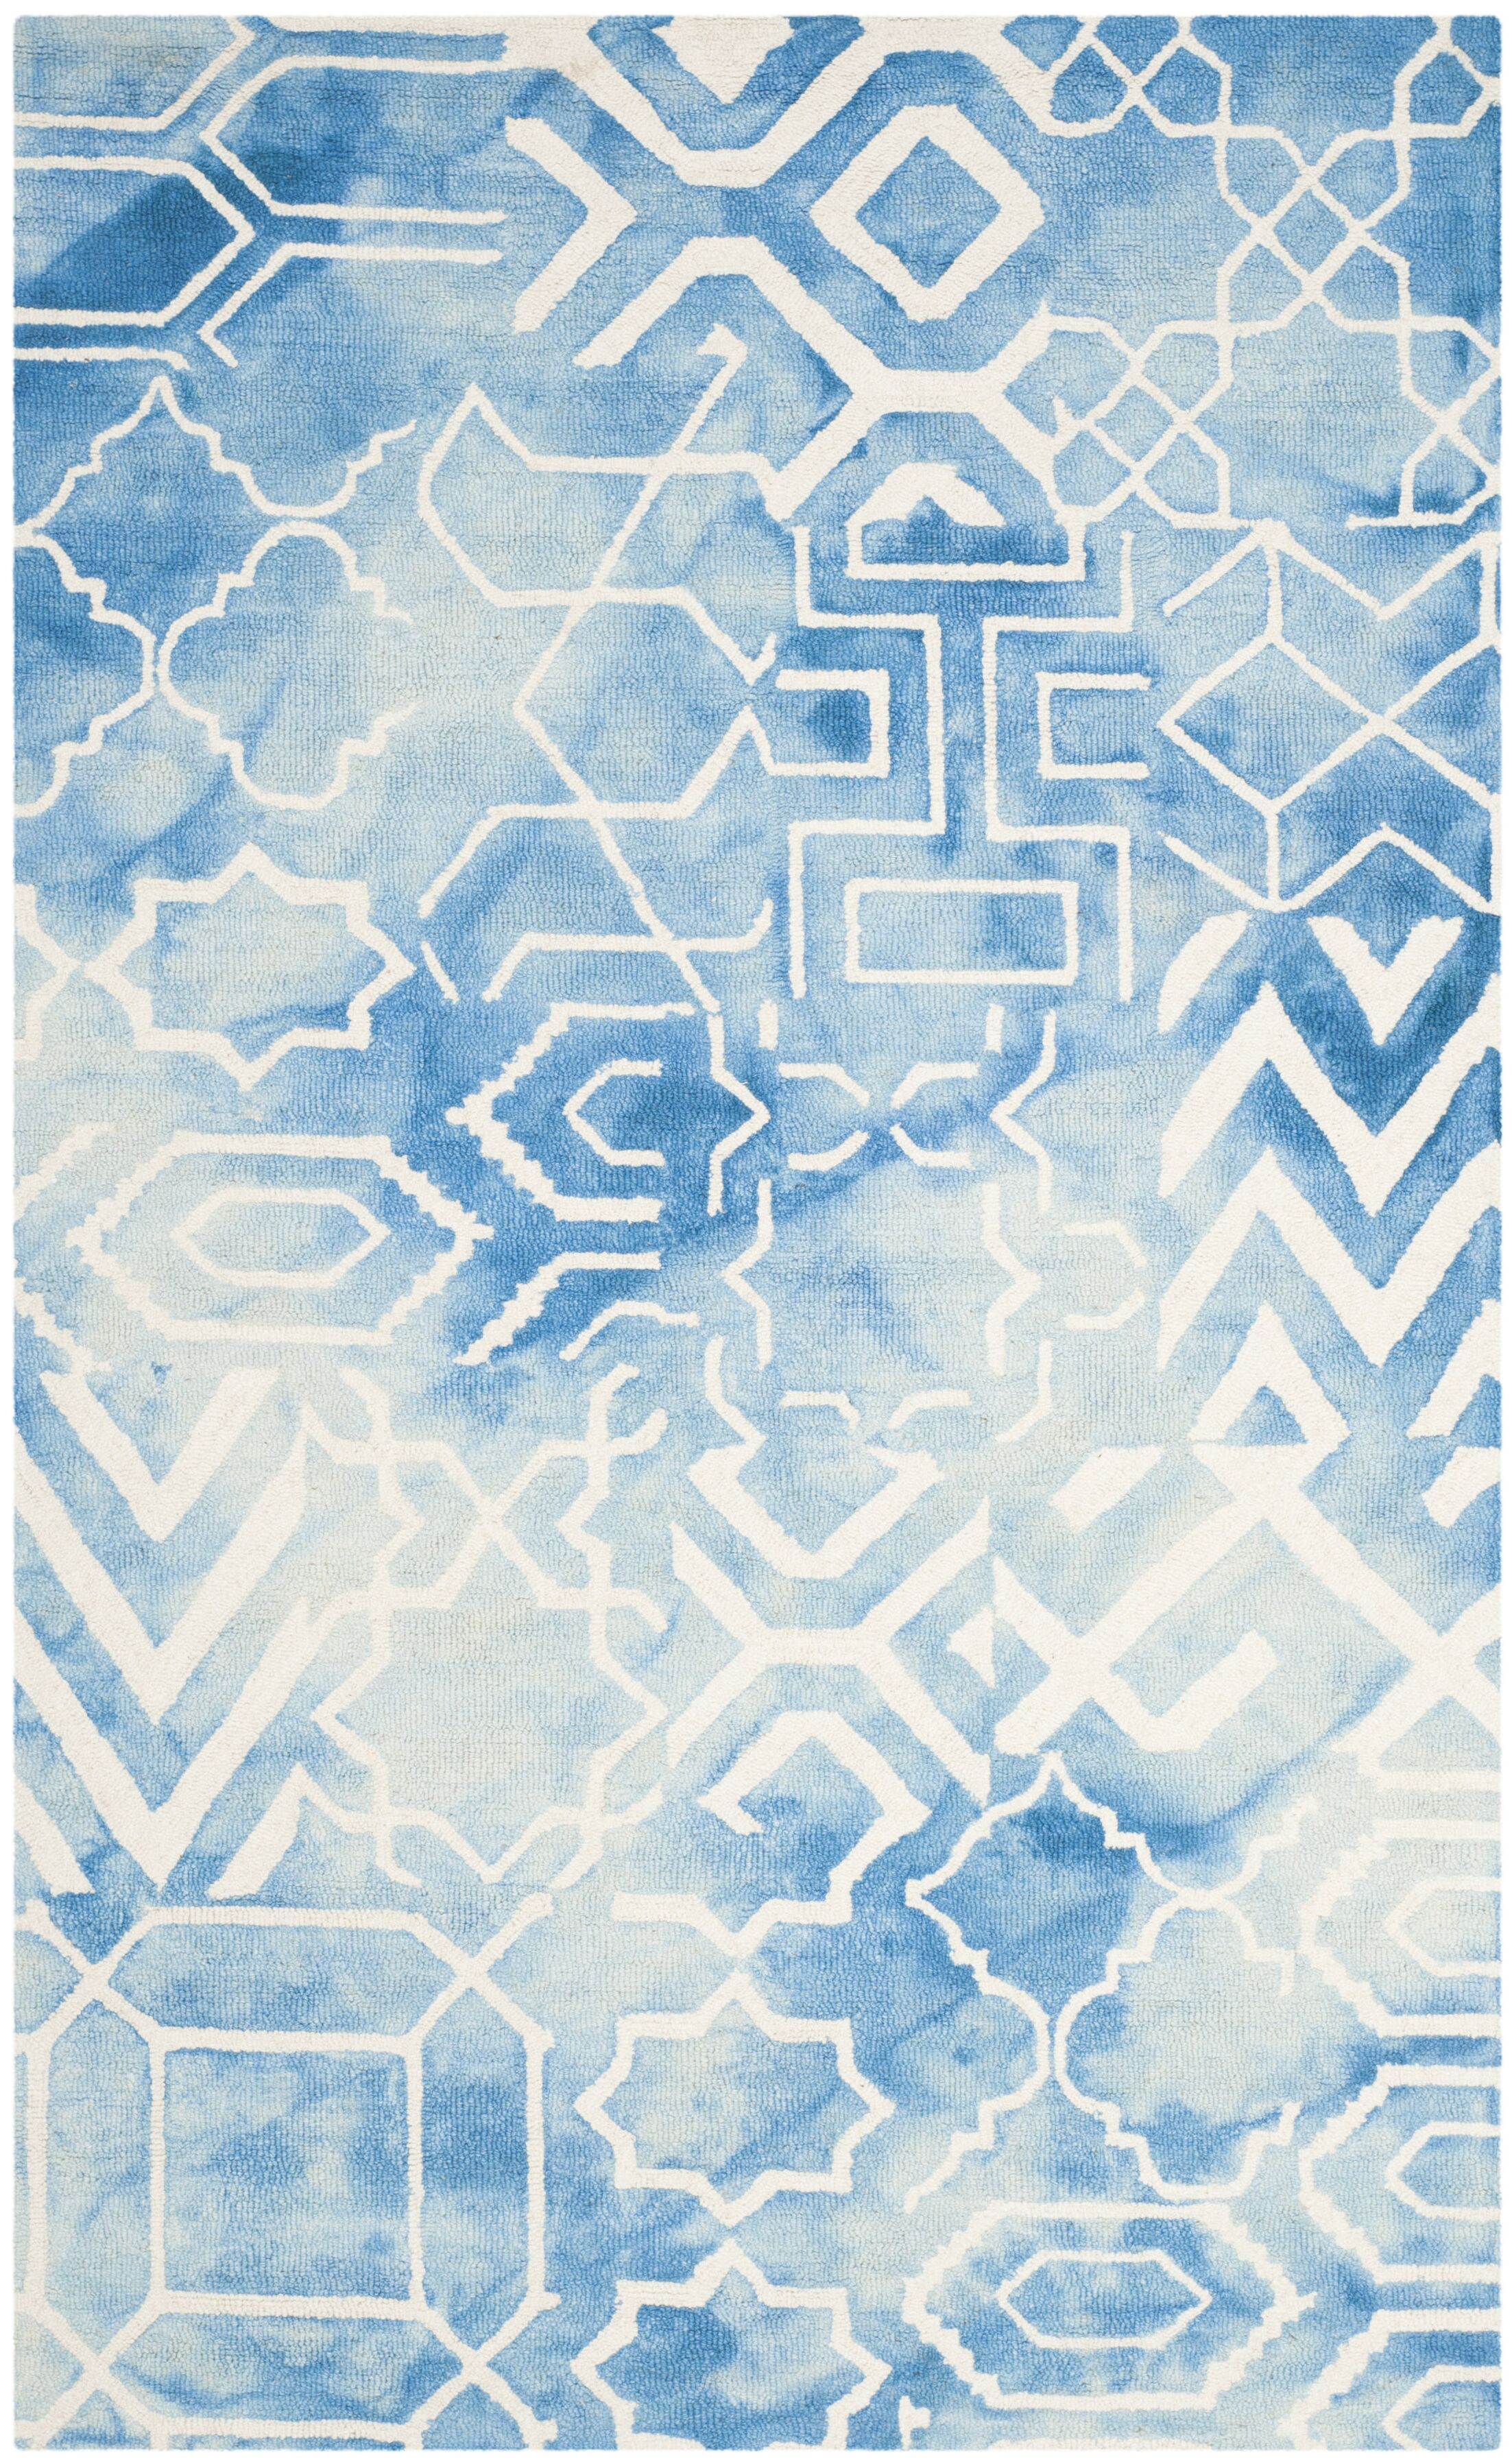 Dip Dye Hand-Tufted Blue/Ivory Area Rug Rug Size: Square 5'